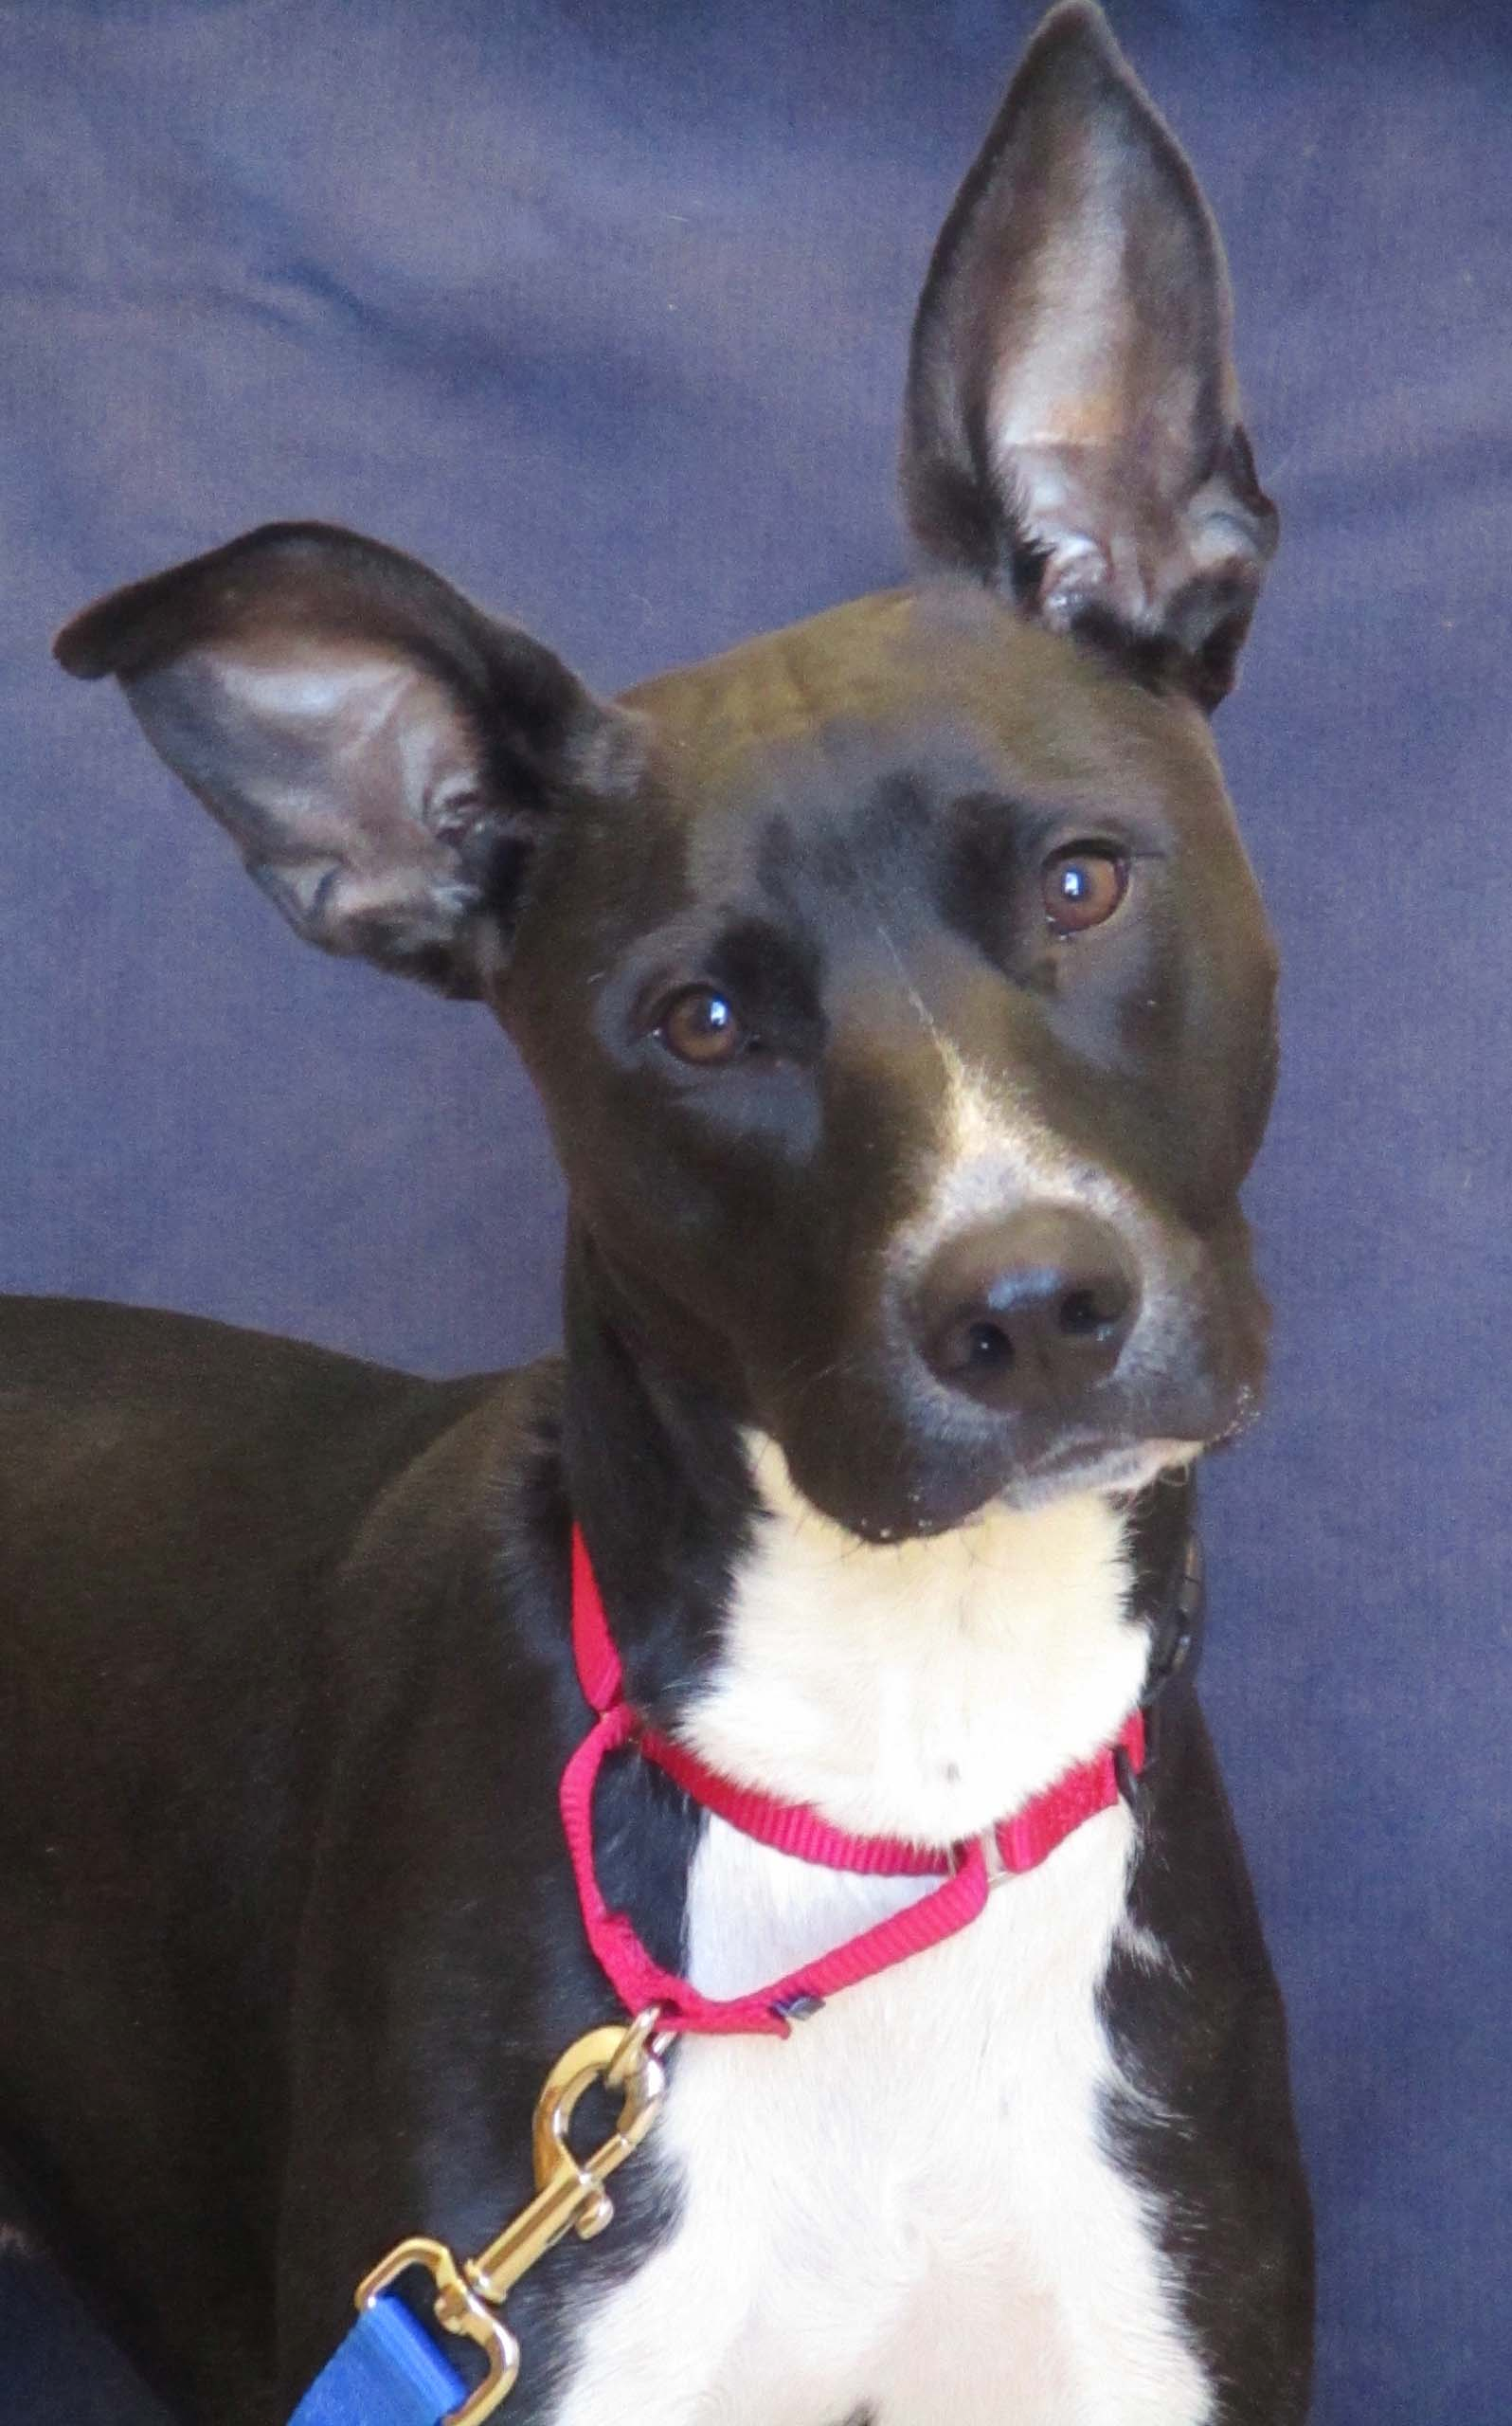 Troy is a 2-year-old Labrador mix. His play style is rambunctious because he LOVES toys! He would do best in a house without cats. If you're looking for a walking or running companion, he may be the one. (Side note--look at those ears!!)